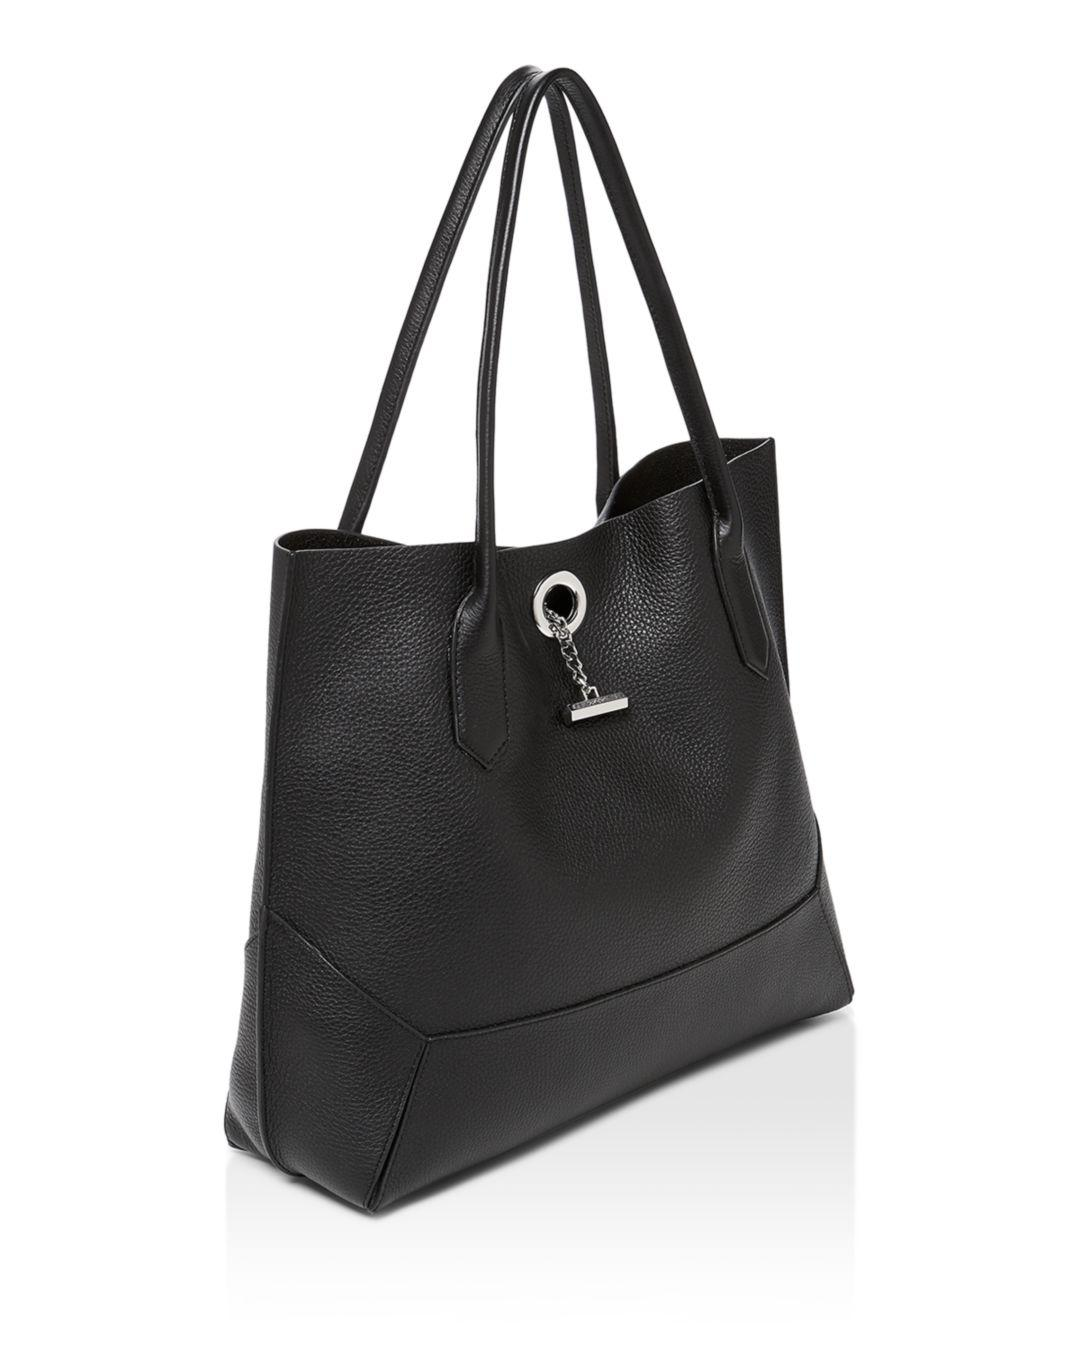 015d08451 Botkier Waverly Leather Tote in Black - Save 39% - Lyst